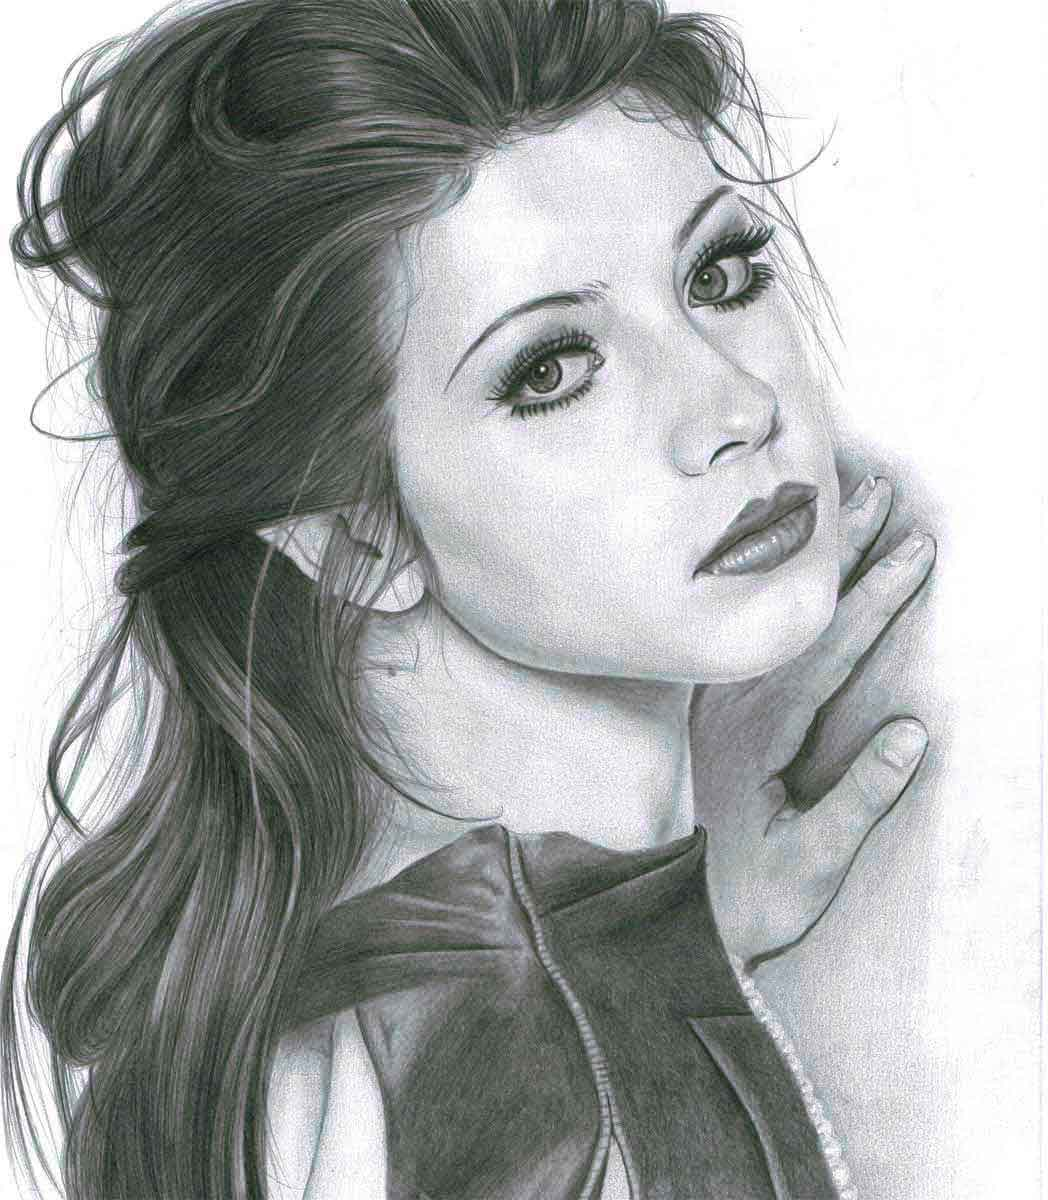 Realistic Pencil Drawing of Actress Michelle Trachtenberg, by Transgender Artist Sophie Lawson